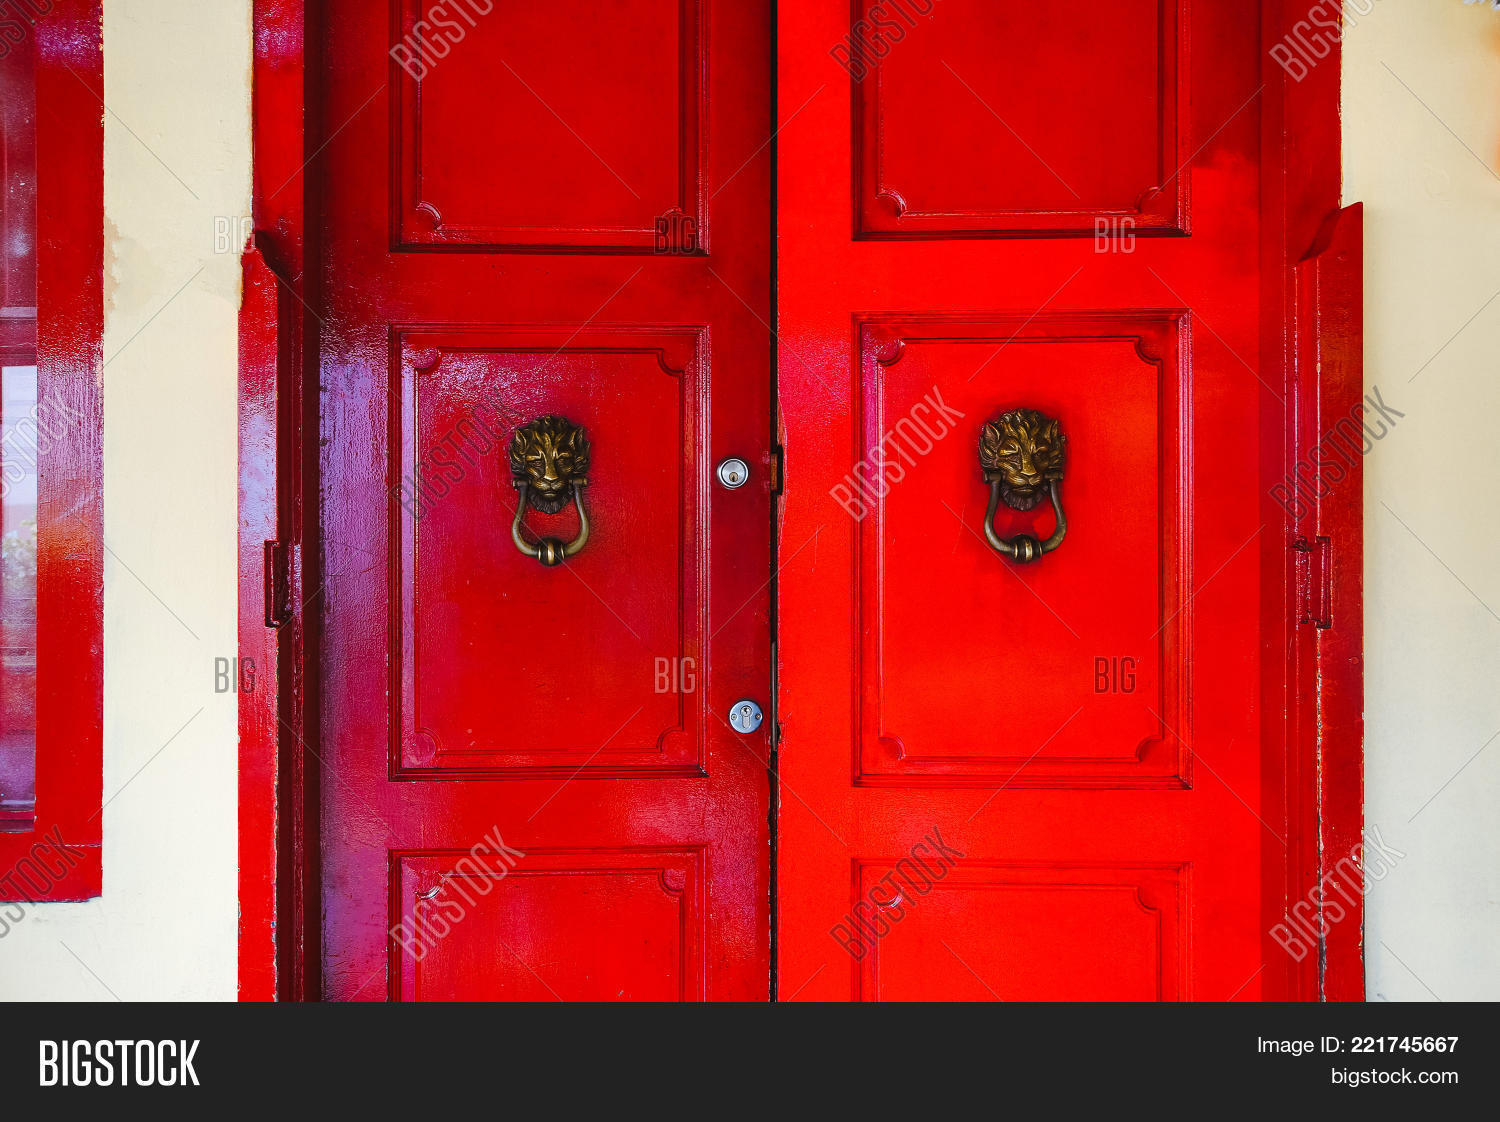 Red Door Lions Double Image Photo Free Trial Bigstock